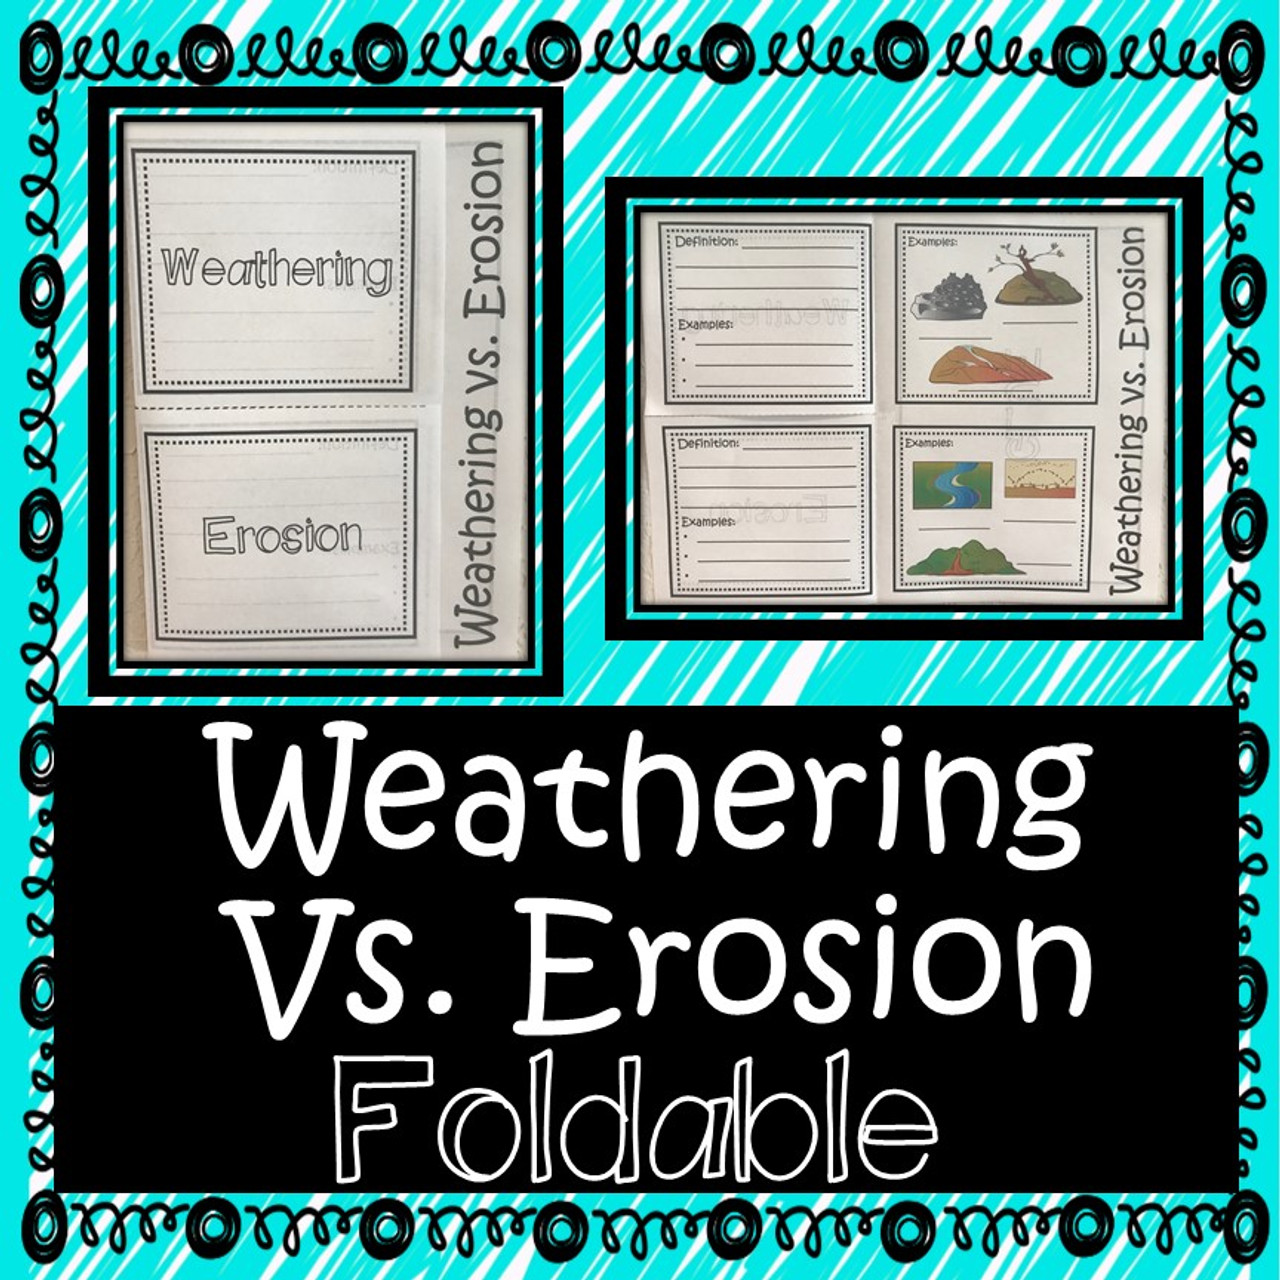 medium resolution of Weathering and Erosion Foldable - Amped Up Learning